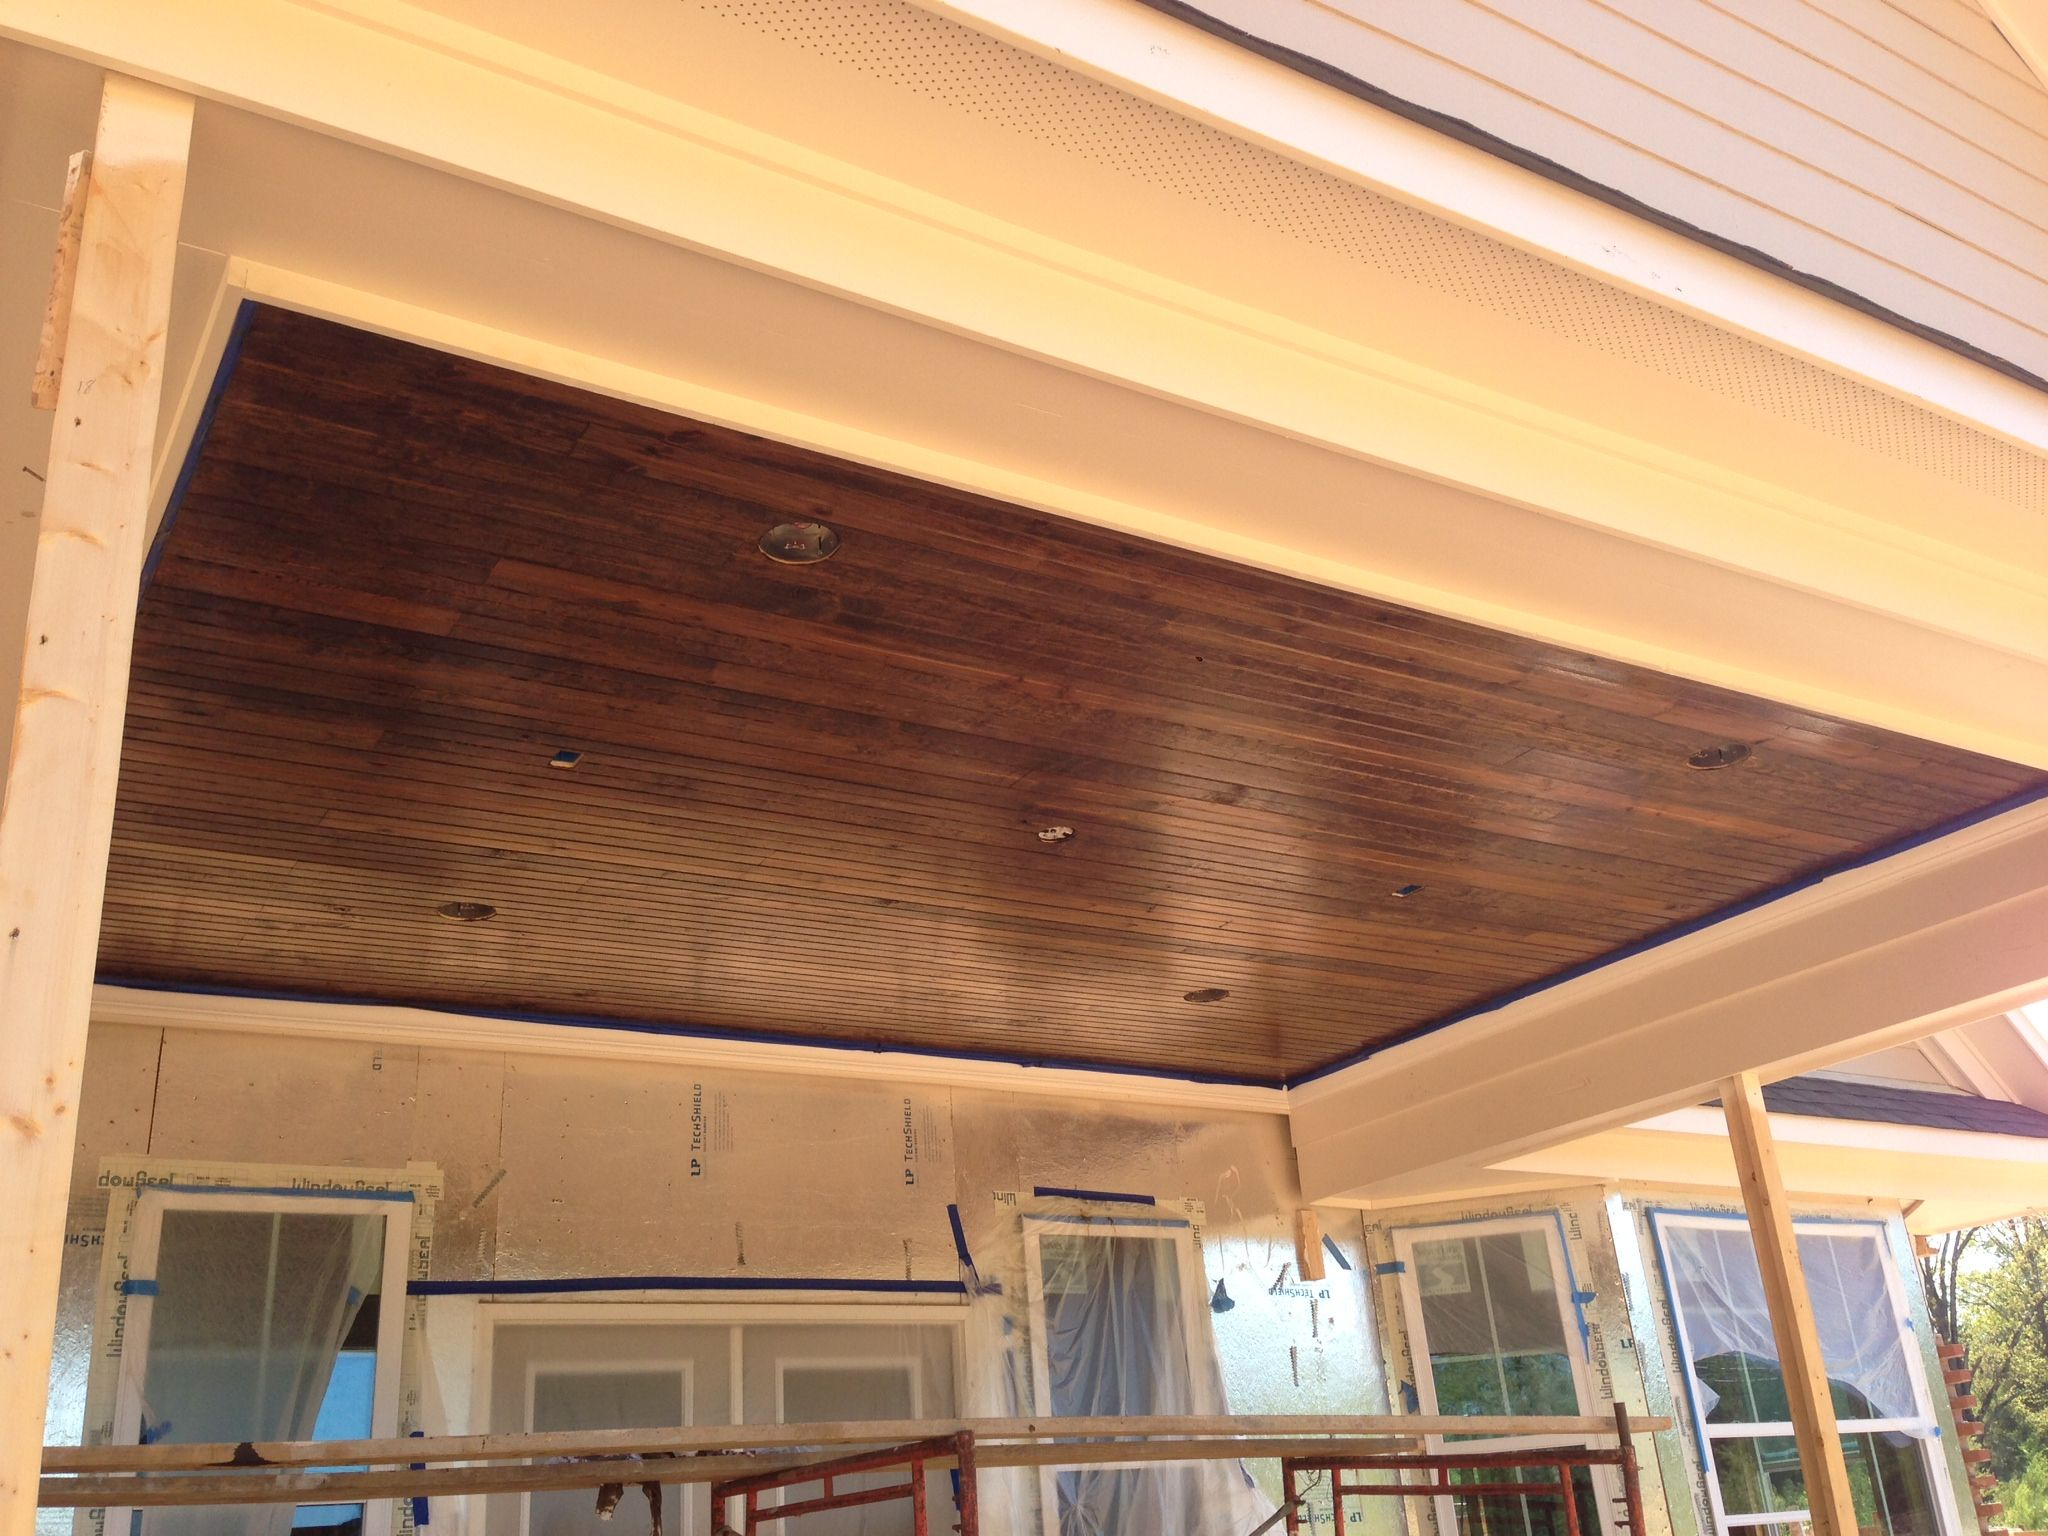 Our patio ceiling! Tongue / groove wood with a dark stain ...